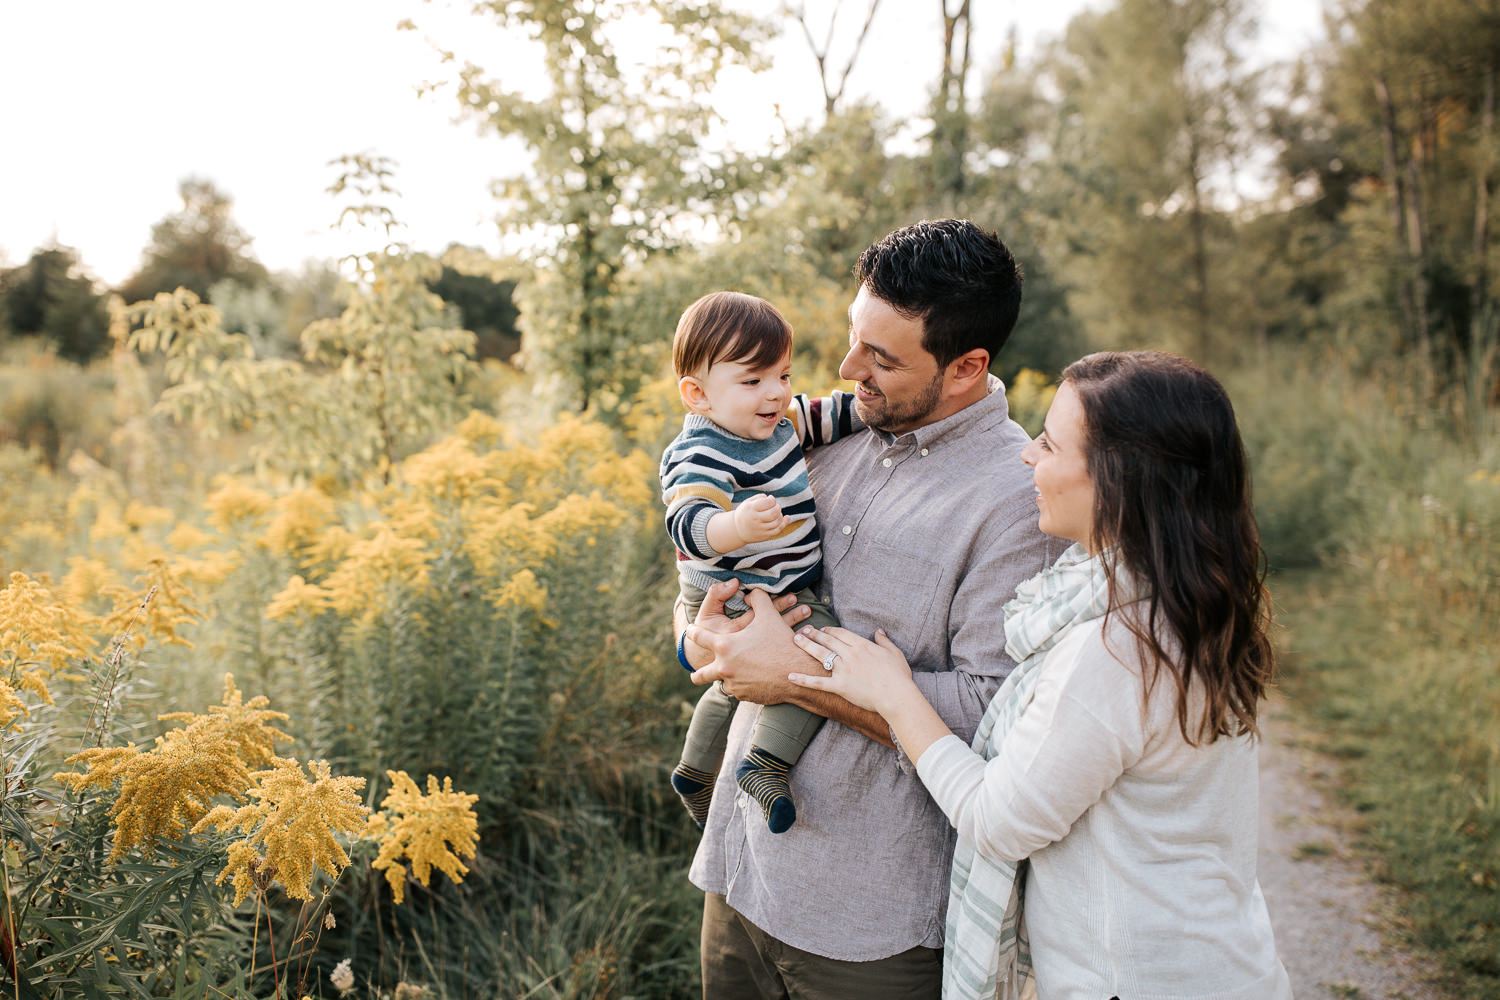 family of 3 standing on path in golden field, dad holding 1 year old baby boy, mom standing behind husband, hand on his arm, looking at son - Stouffville LifestylePhotos